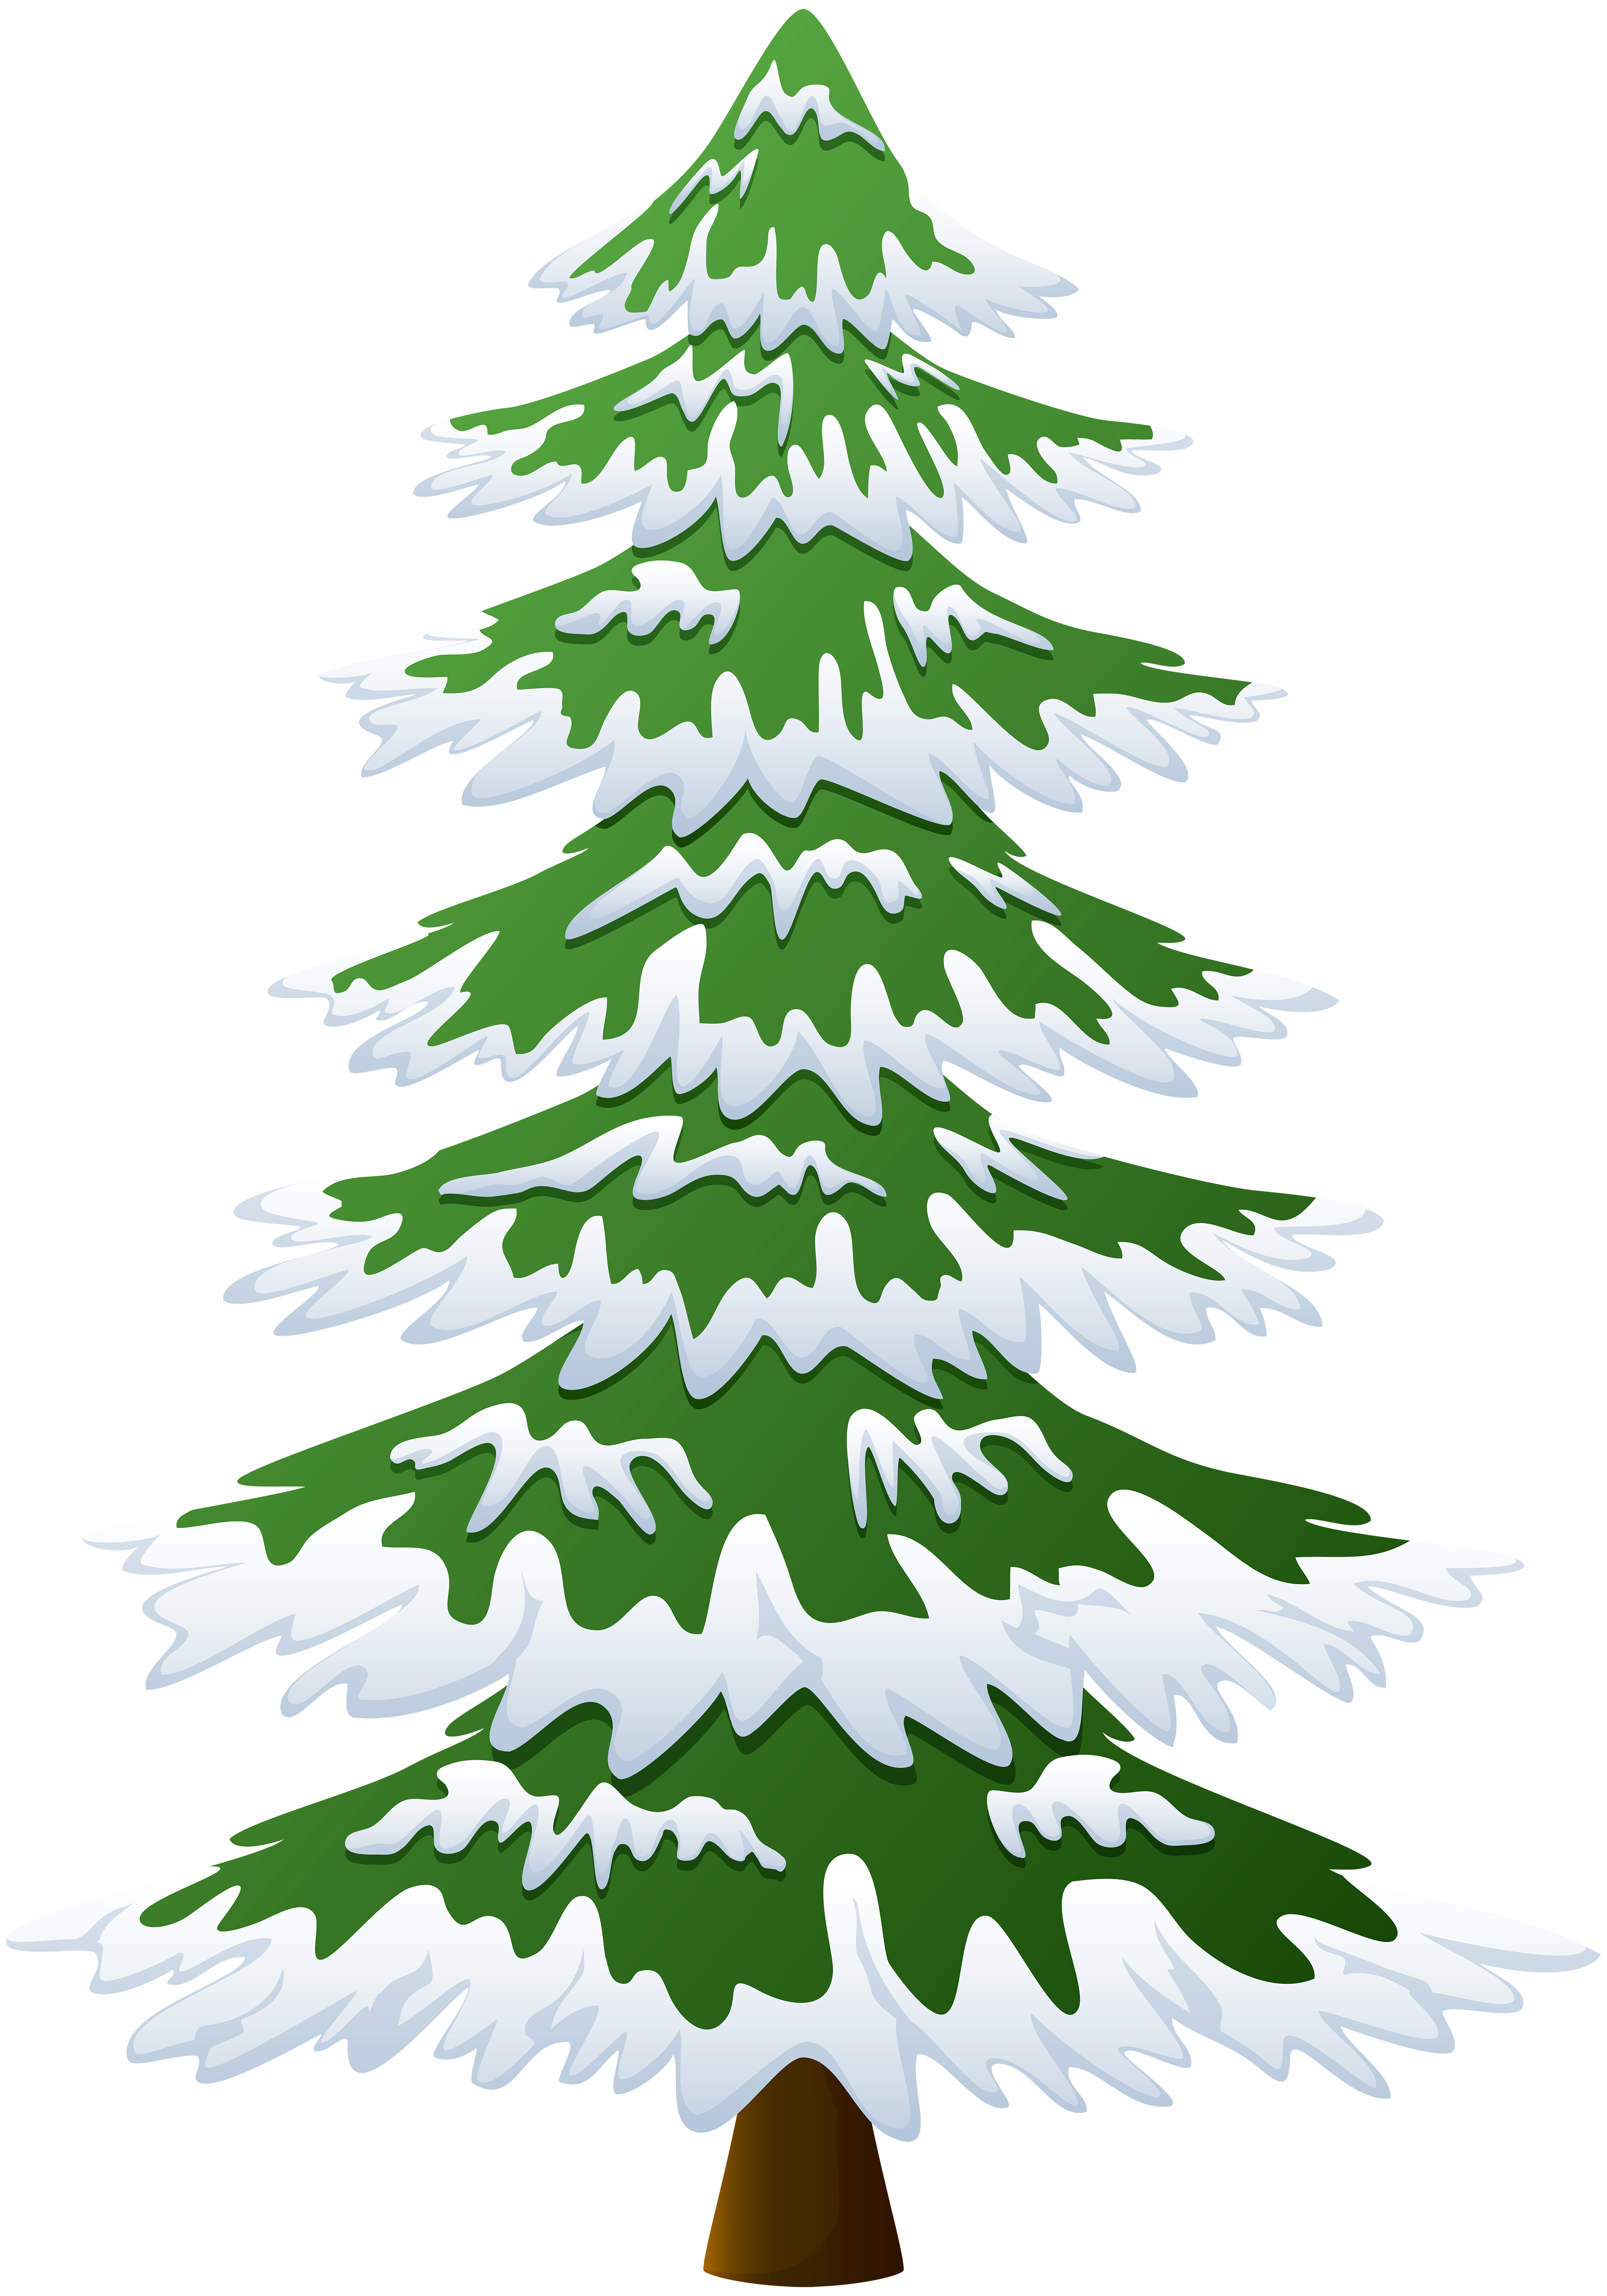 Transparent Background Snow Covered Tree Clipart Winter Clipart.